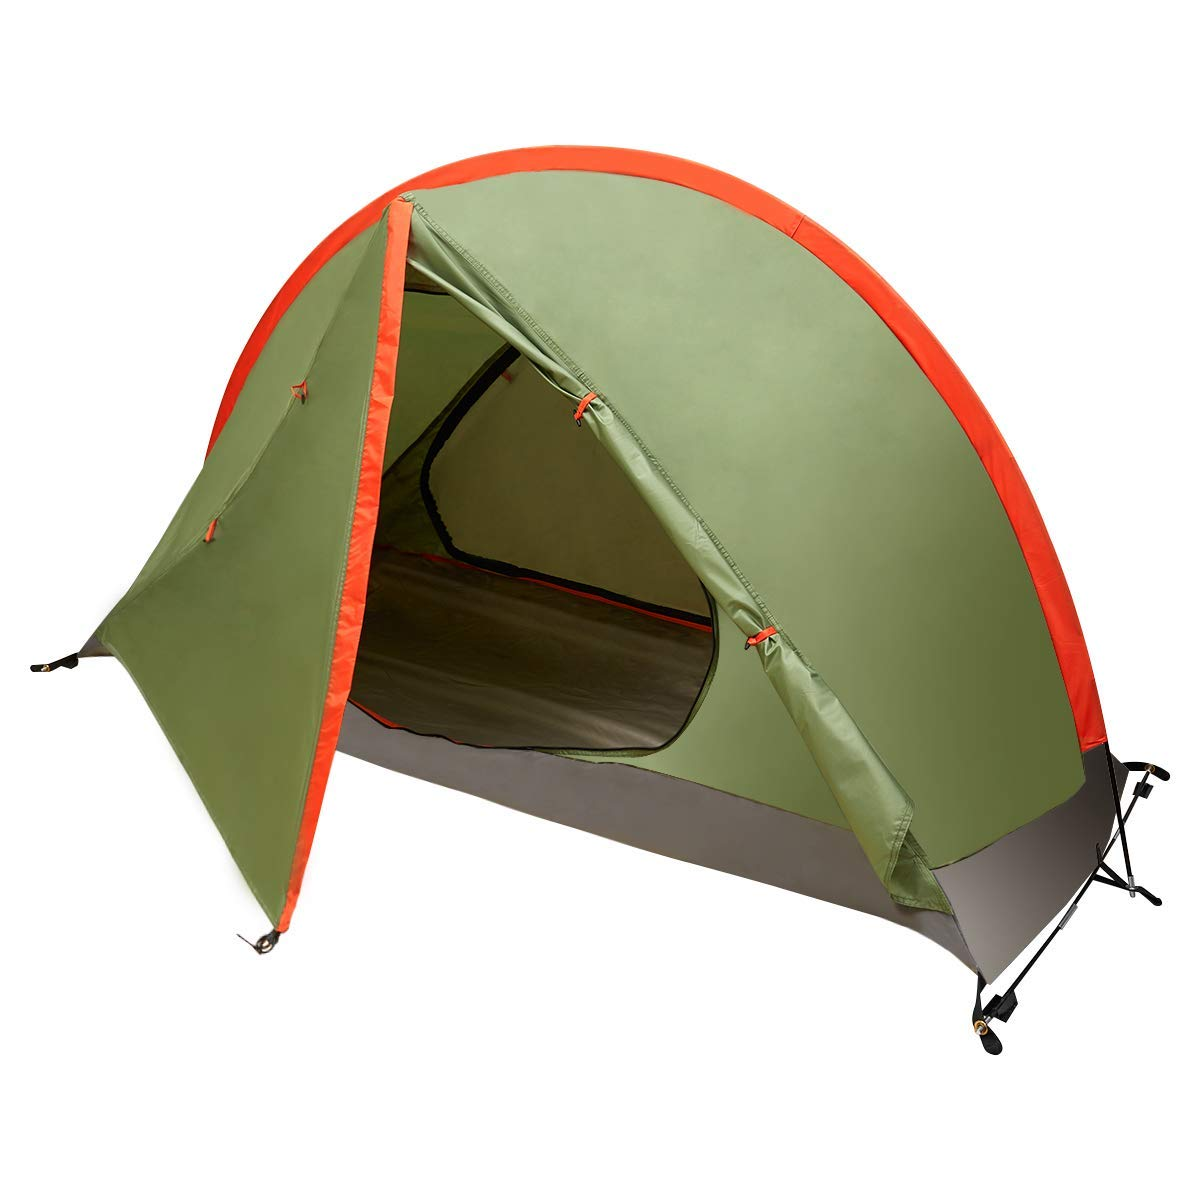 BFULL One Person Camping Tent, Extremely Lightweight for ...